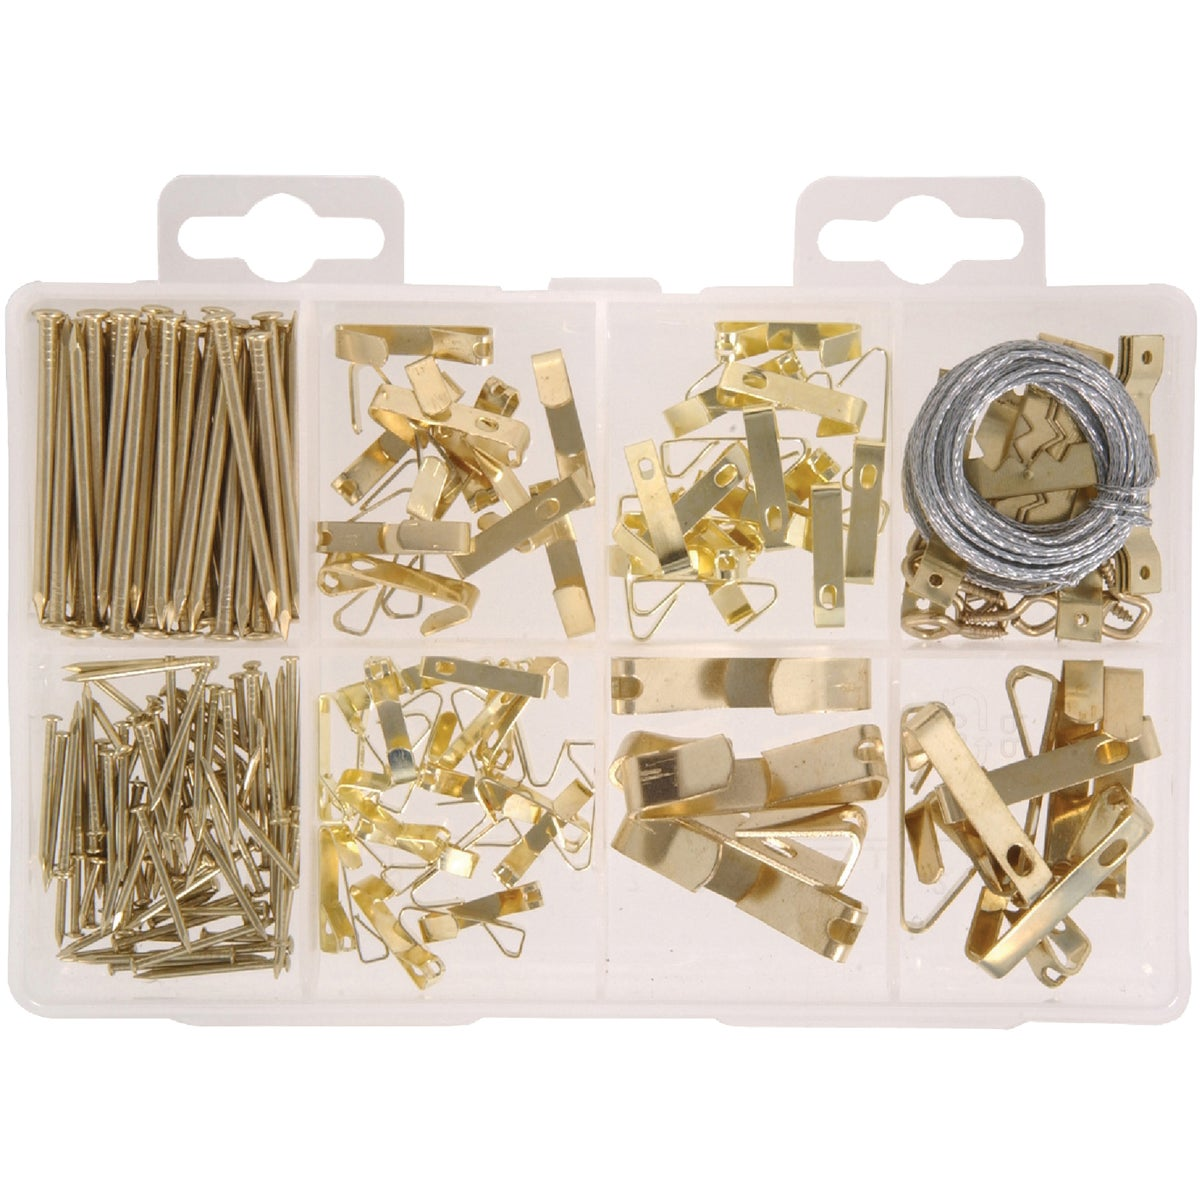 KIT PICTURE HANGER - 130251 by Hillman Fastener